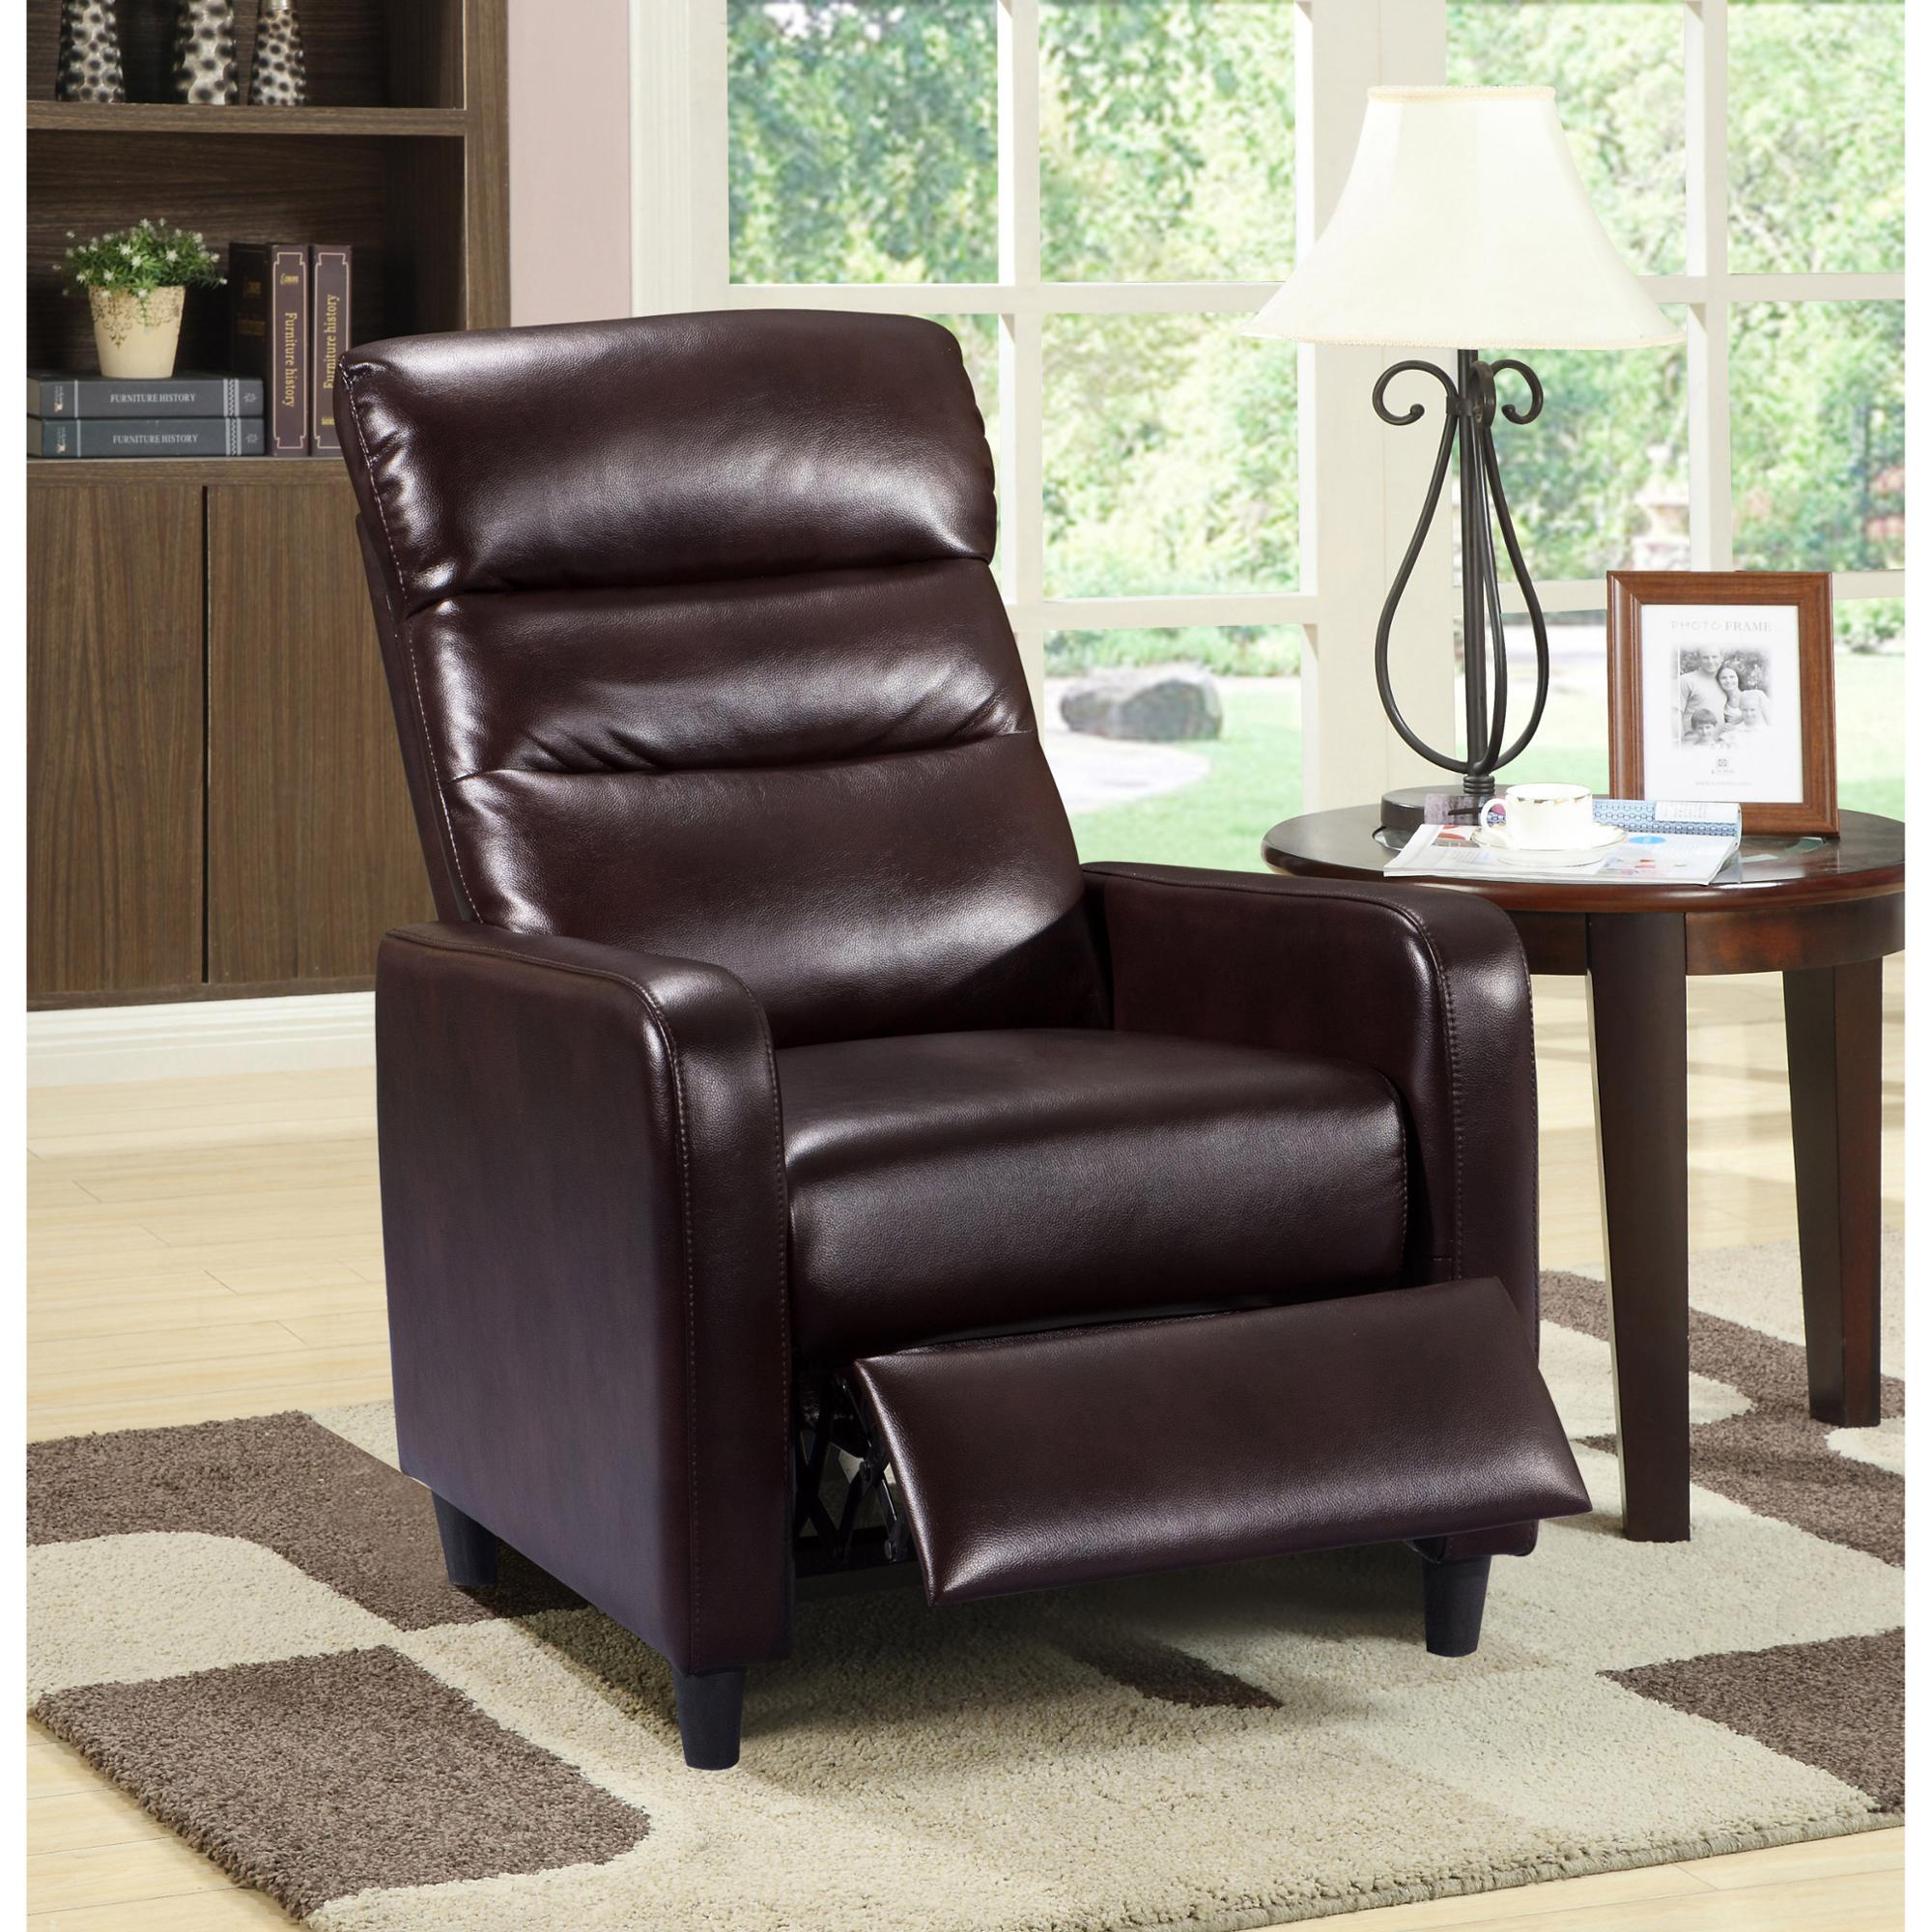 Modern Design Leather Recliner Arm Chairs Lift Recliner Chair Sofa Recliner Office Chair For Living Room Buy Recliner Kuka Leather Sofa Reclining